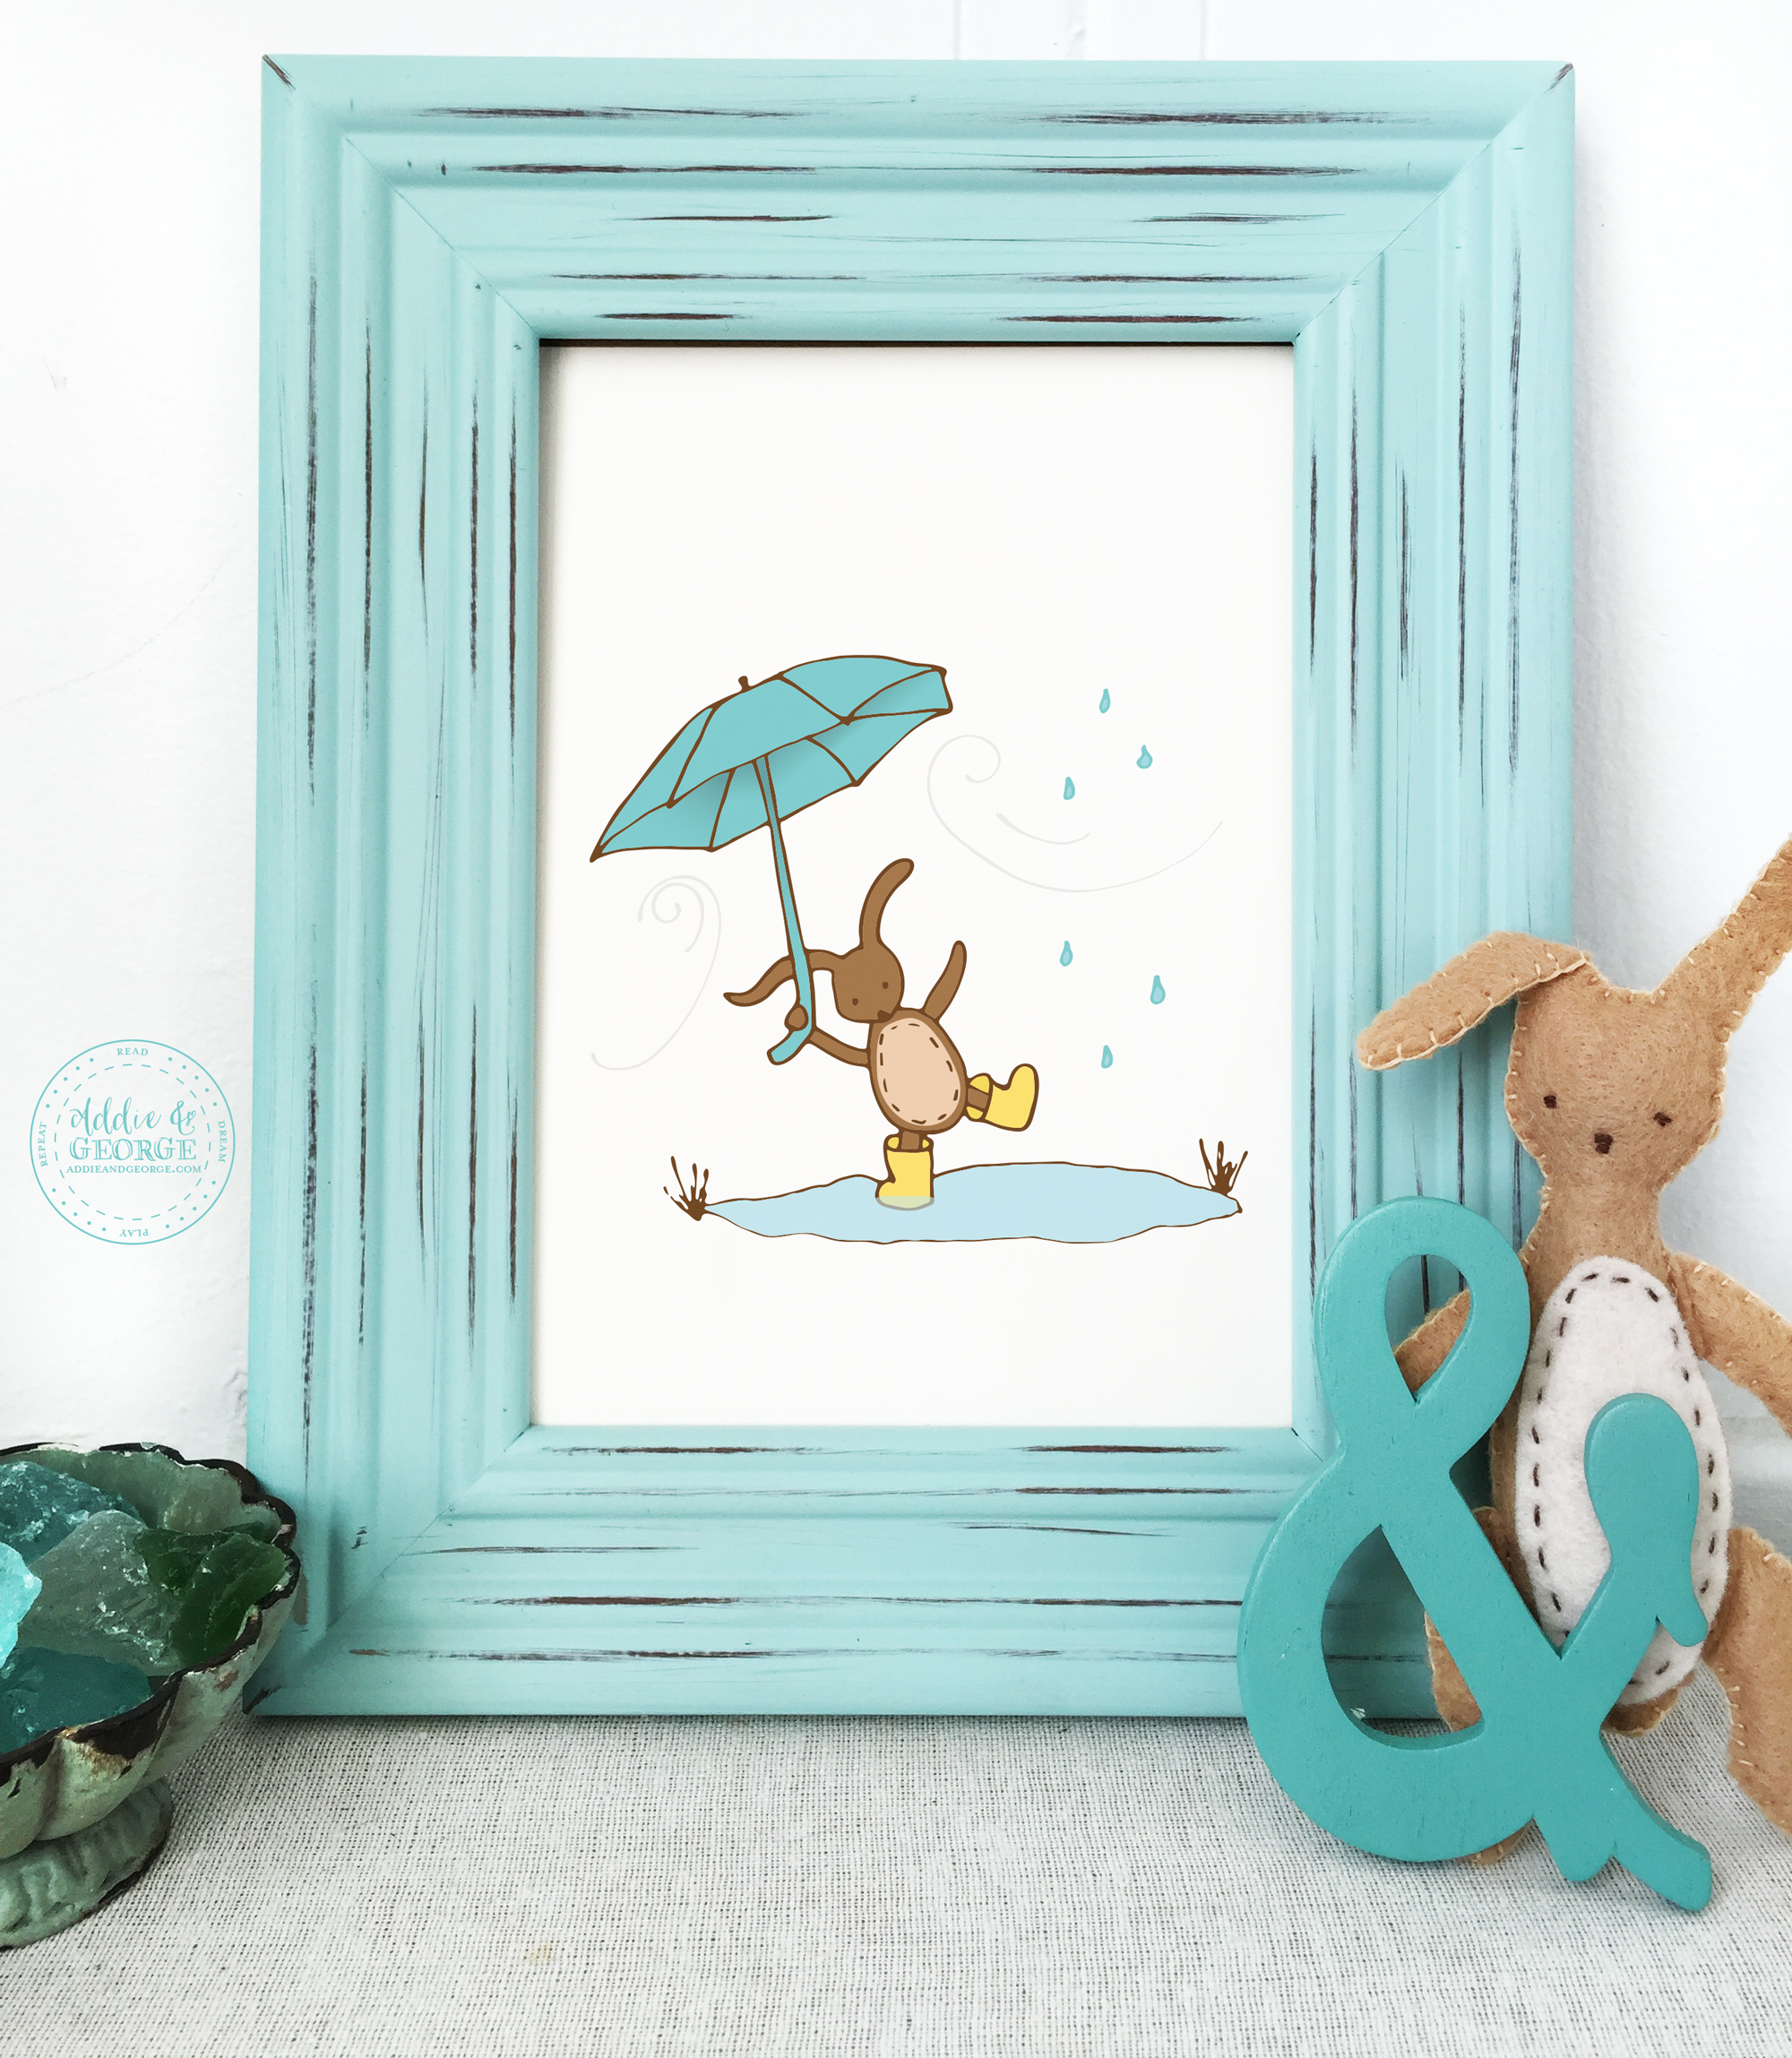 Blustery Day Nursery Wall Decor, Windy Day, Rainy Day